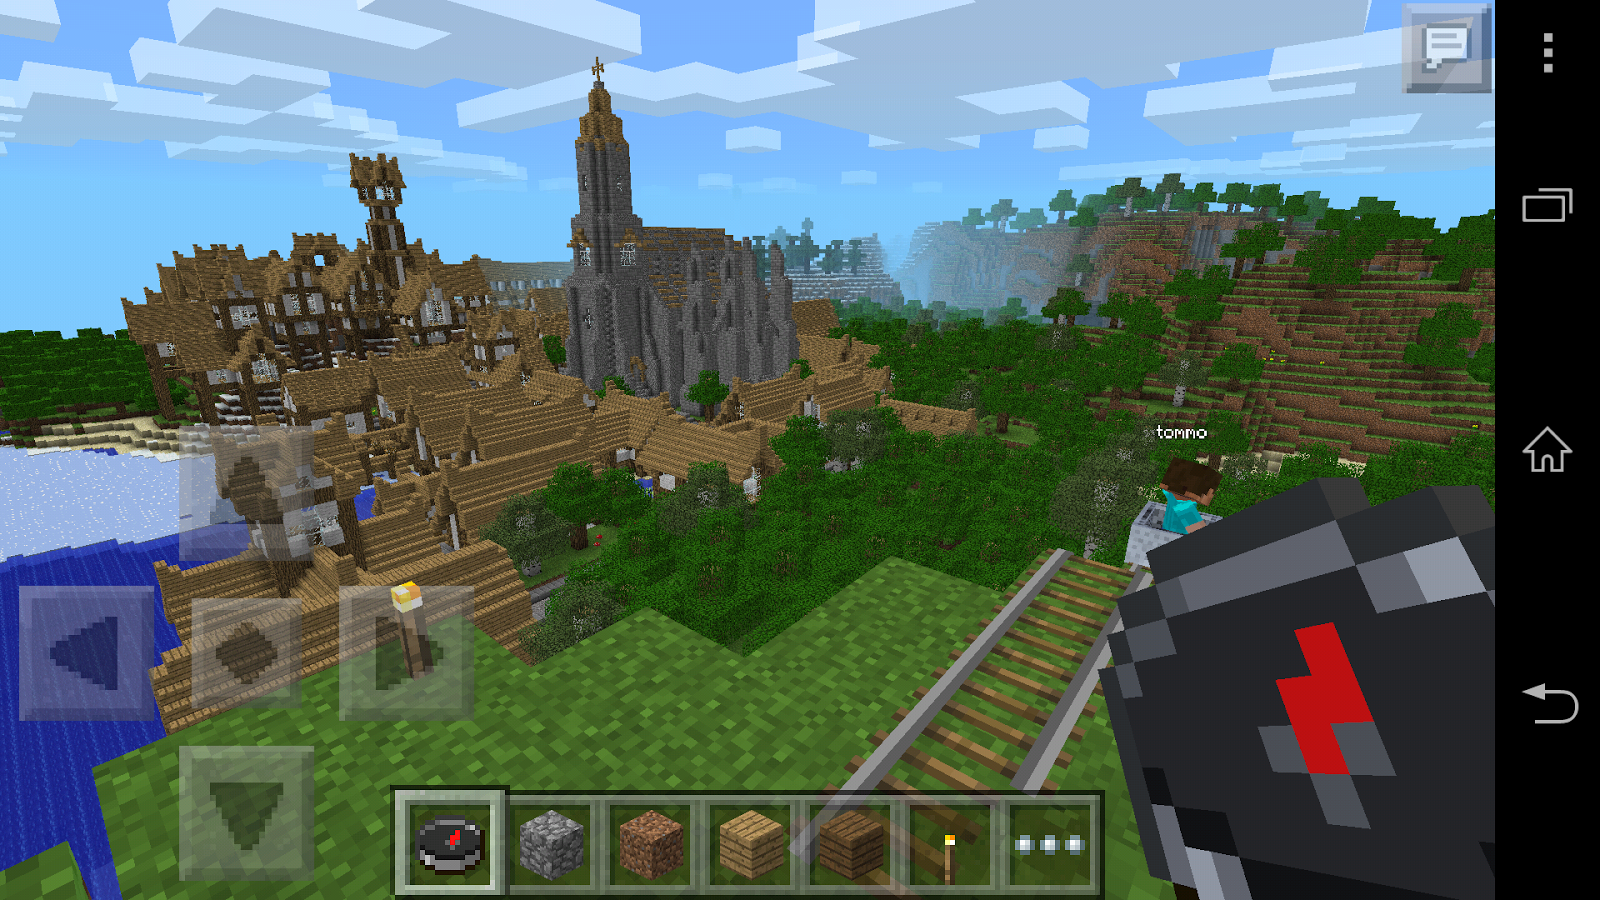 Exploring the new update in Minecraft Pocket Edition